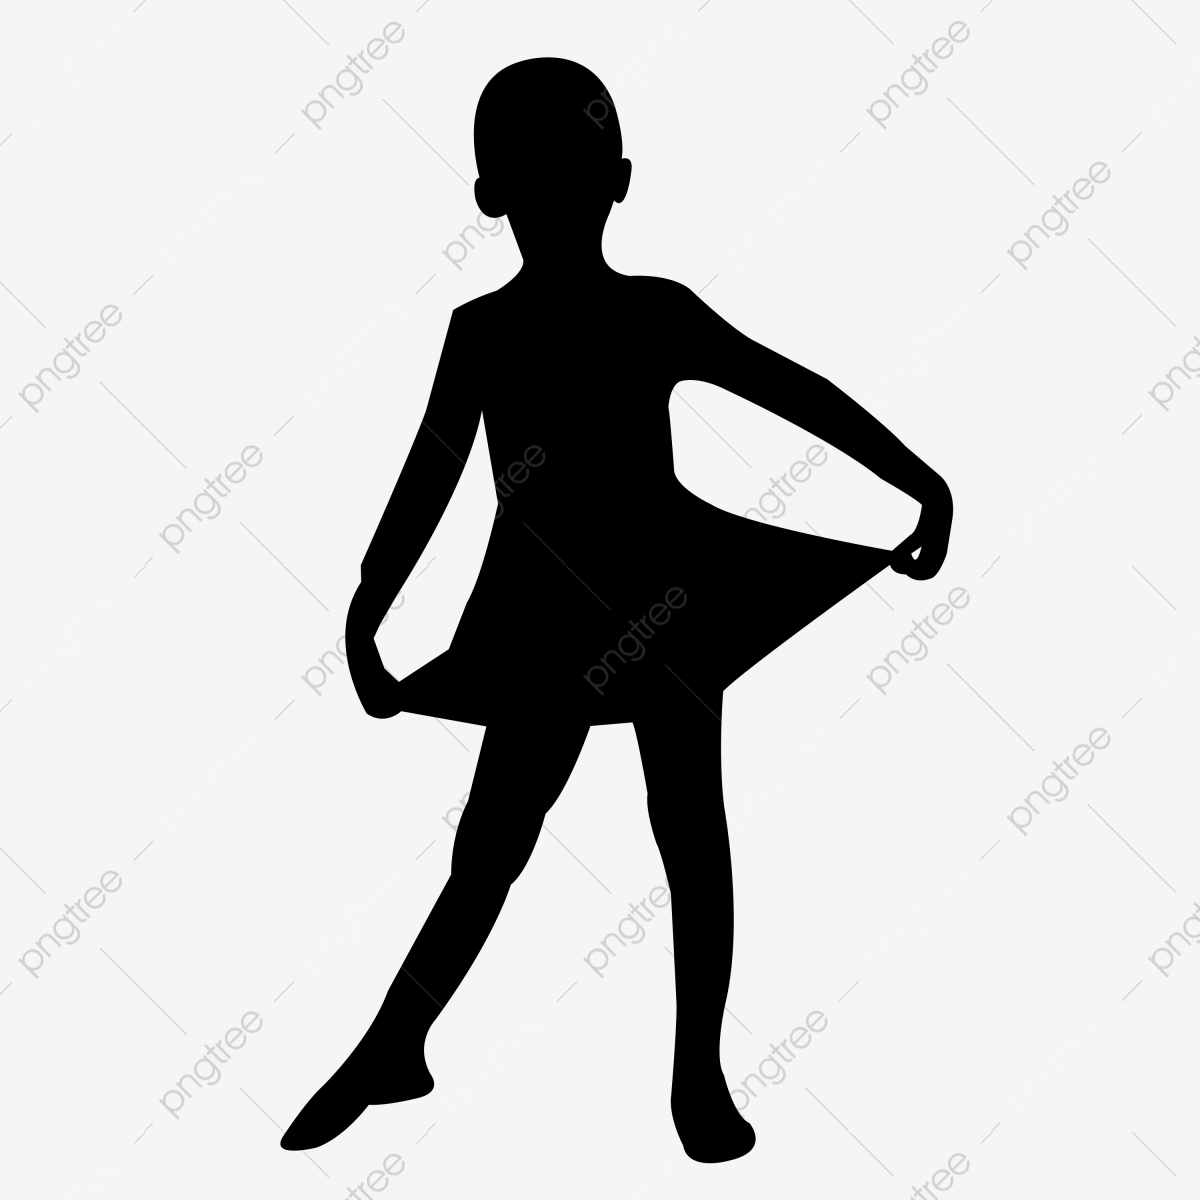 Dancing Kids Vector Illustration Silhouette Dancing Dance Kid Png Transparent Clipart Image And Psd File For Free Download